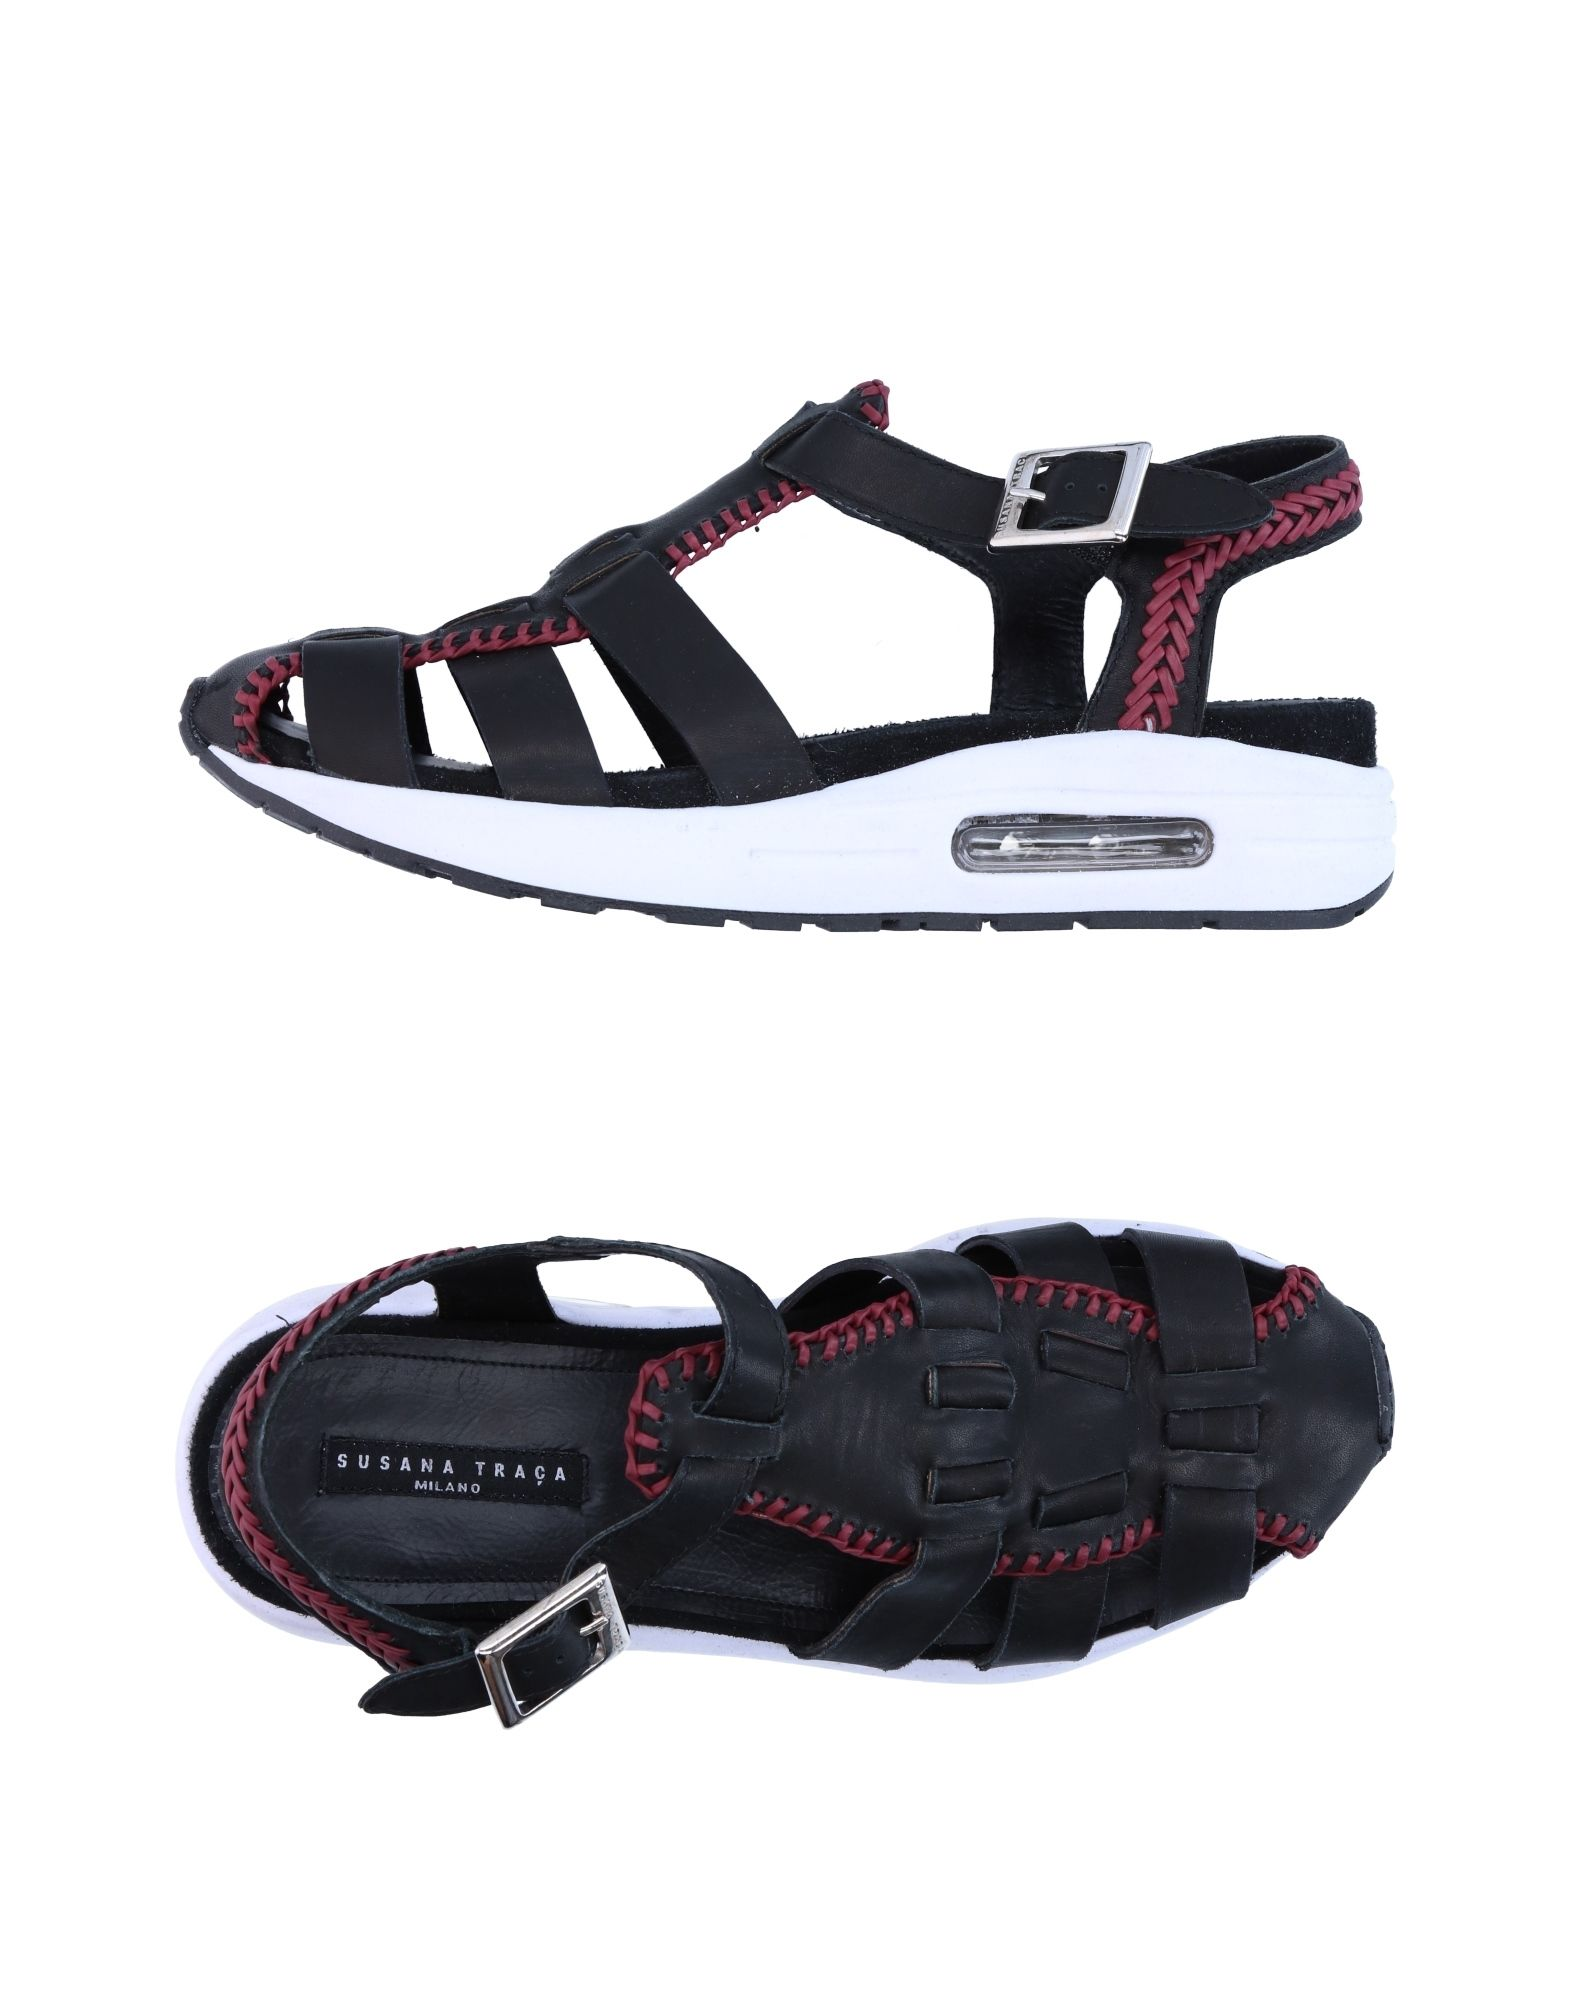 Chaussures - Sandales Susana Tra Une b0Ayx